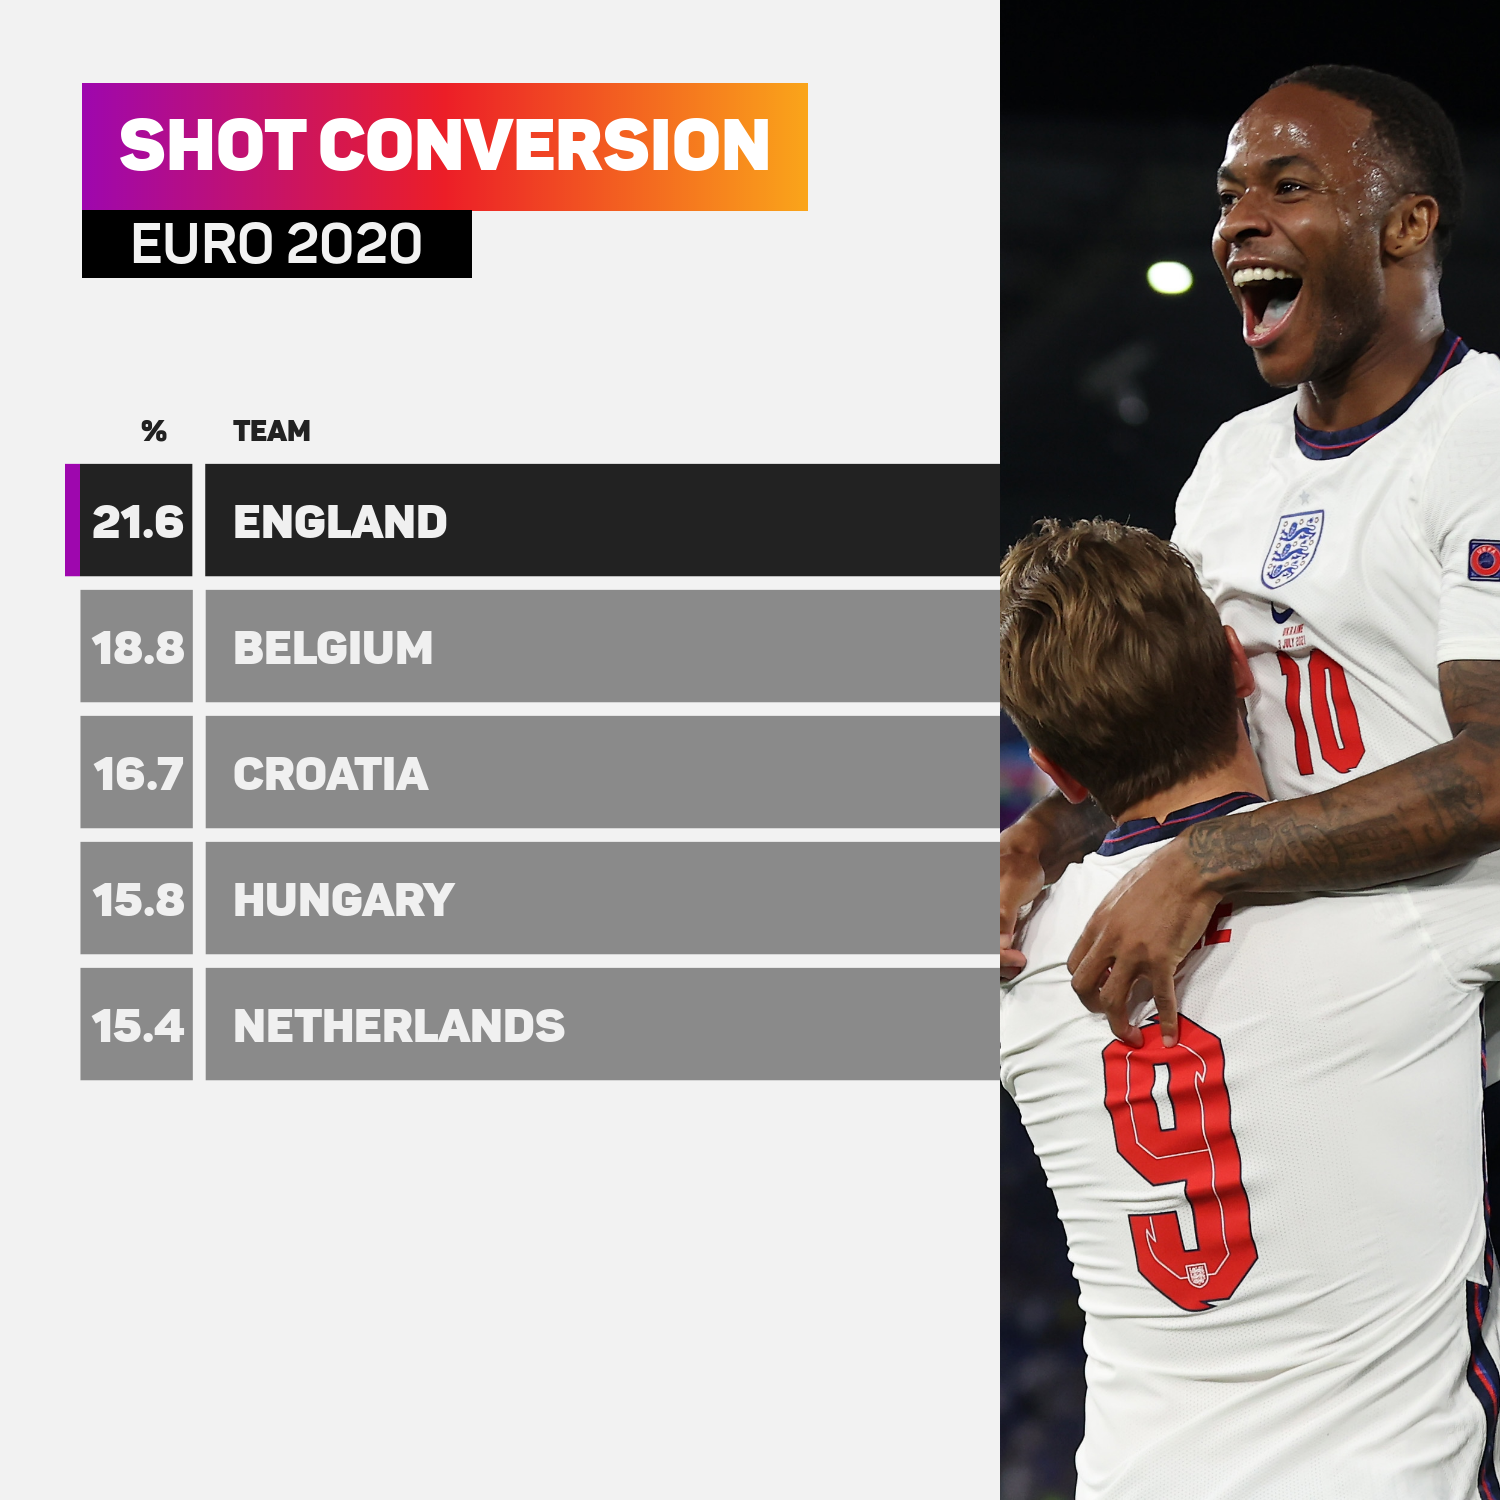 England have the best conversion rate at Euro 2020